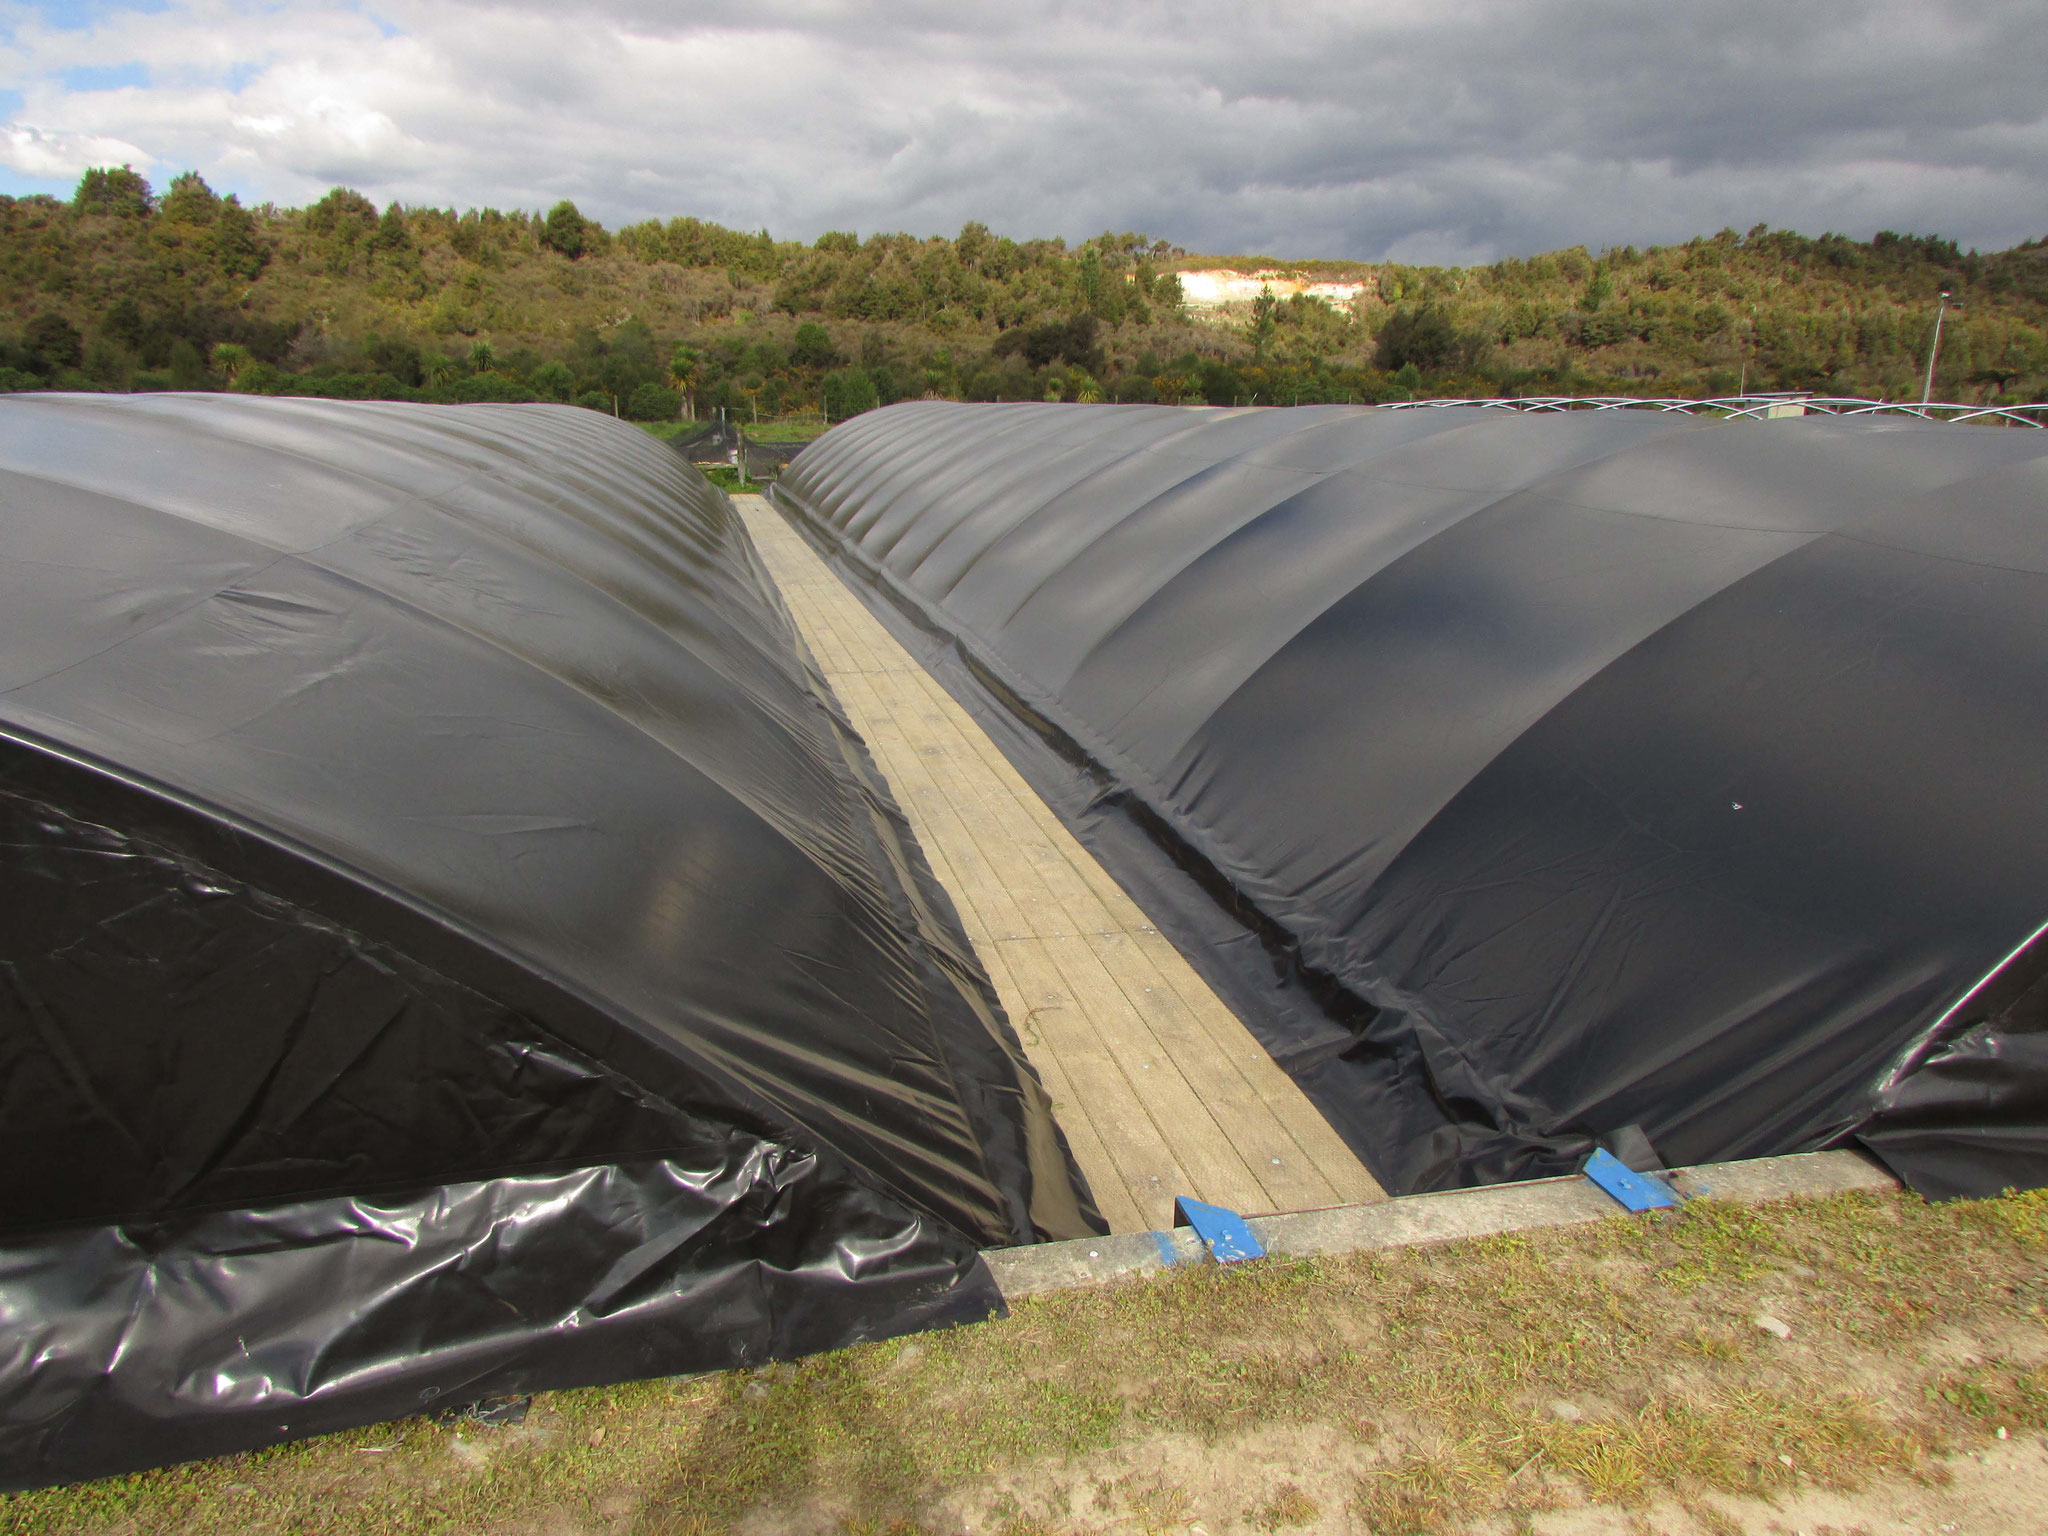 Aquaculture Pond Covers, Takaka, NZ